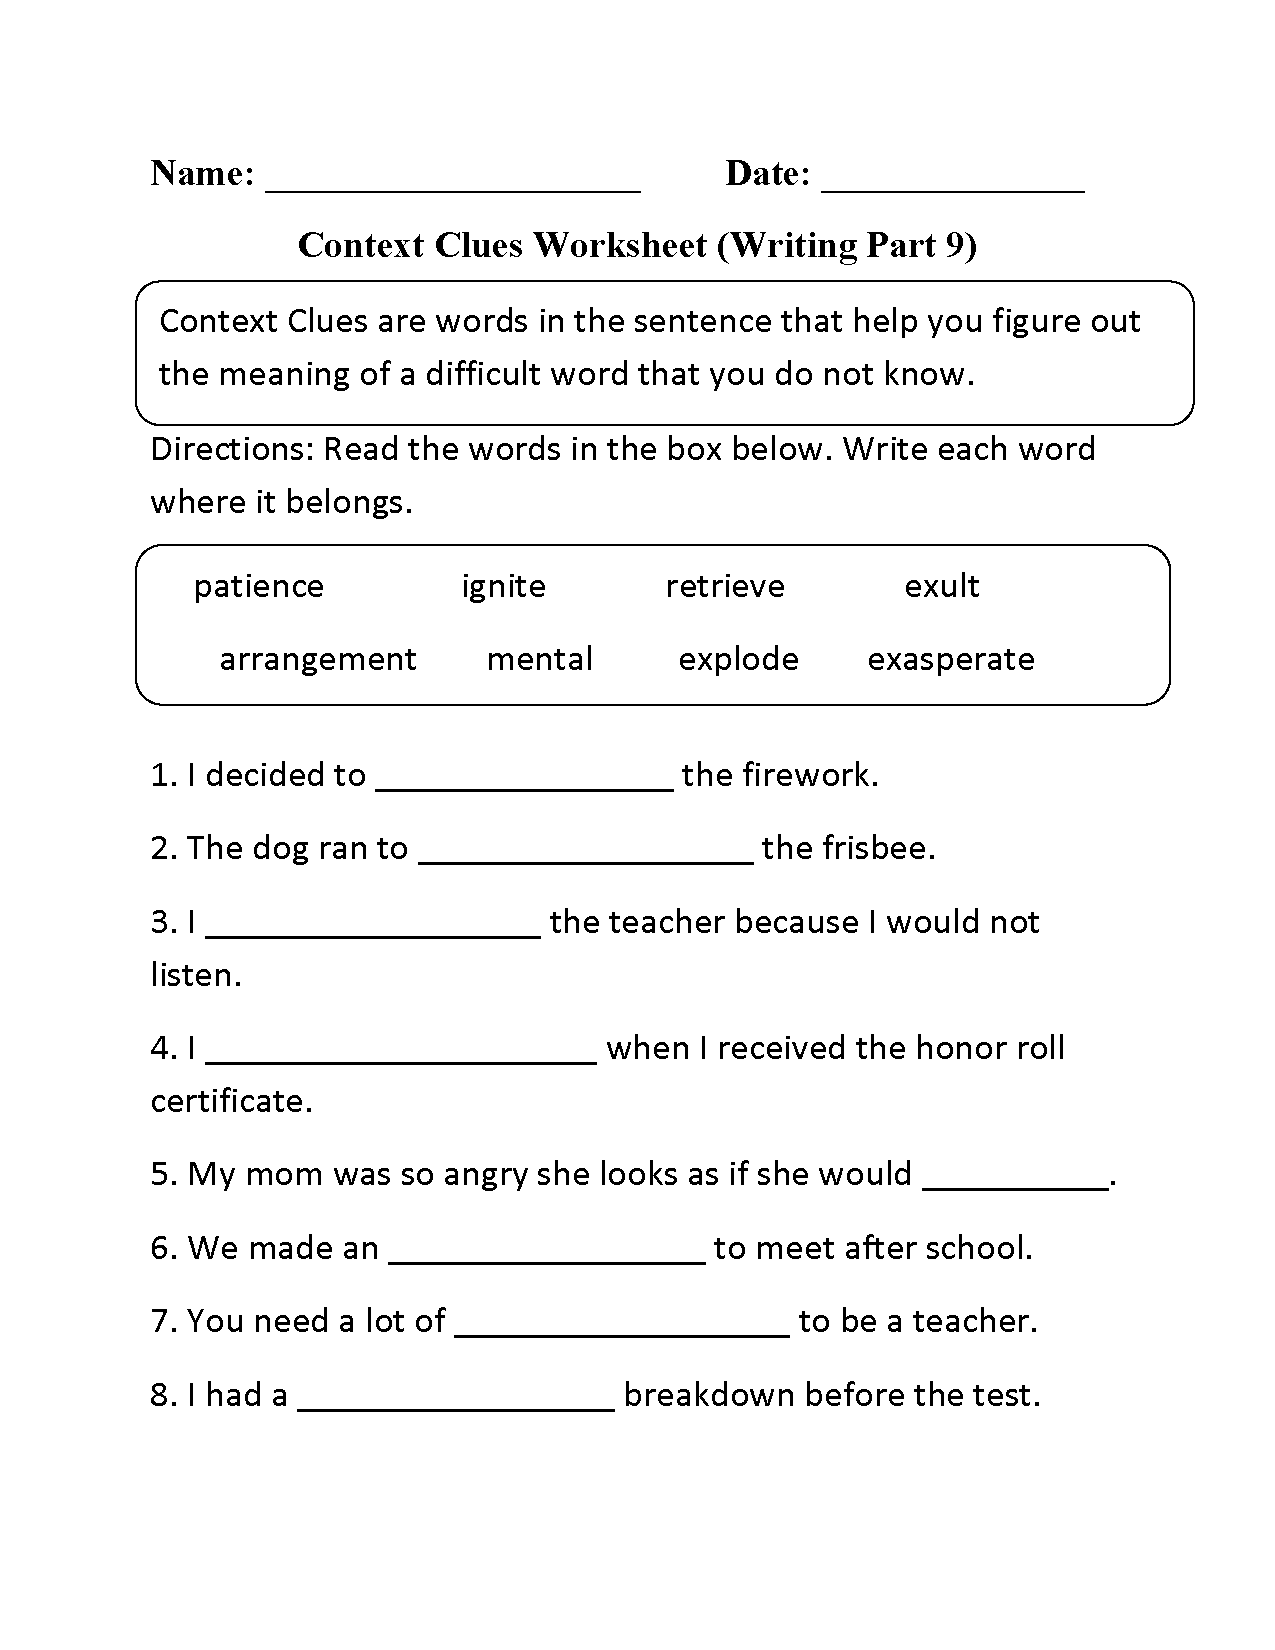 Context Clues Worksheet Writing Part 9 Intermediate – Context Clues Worksheets 6th Grade